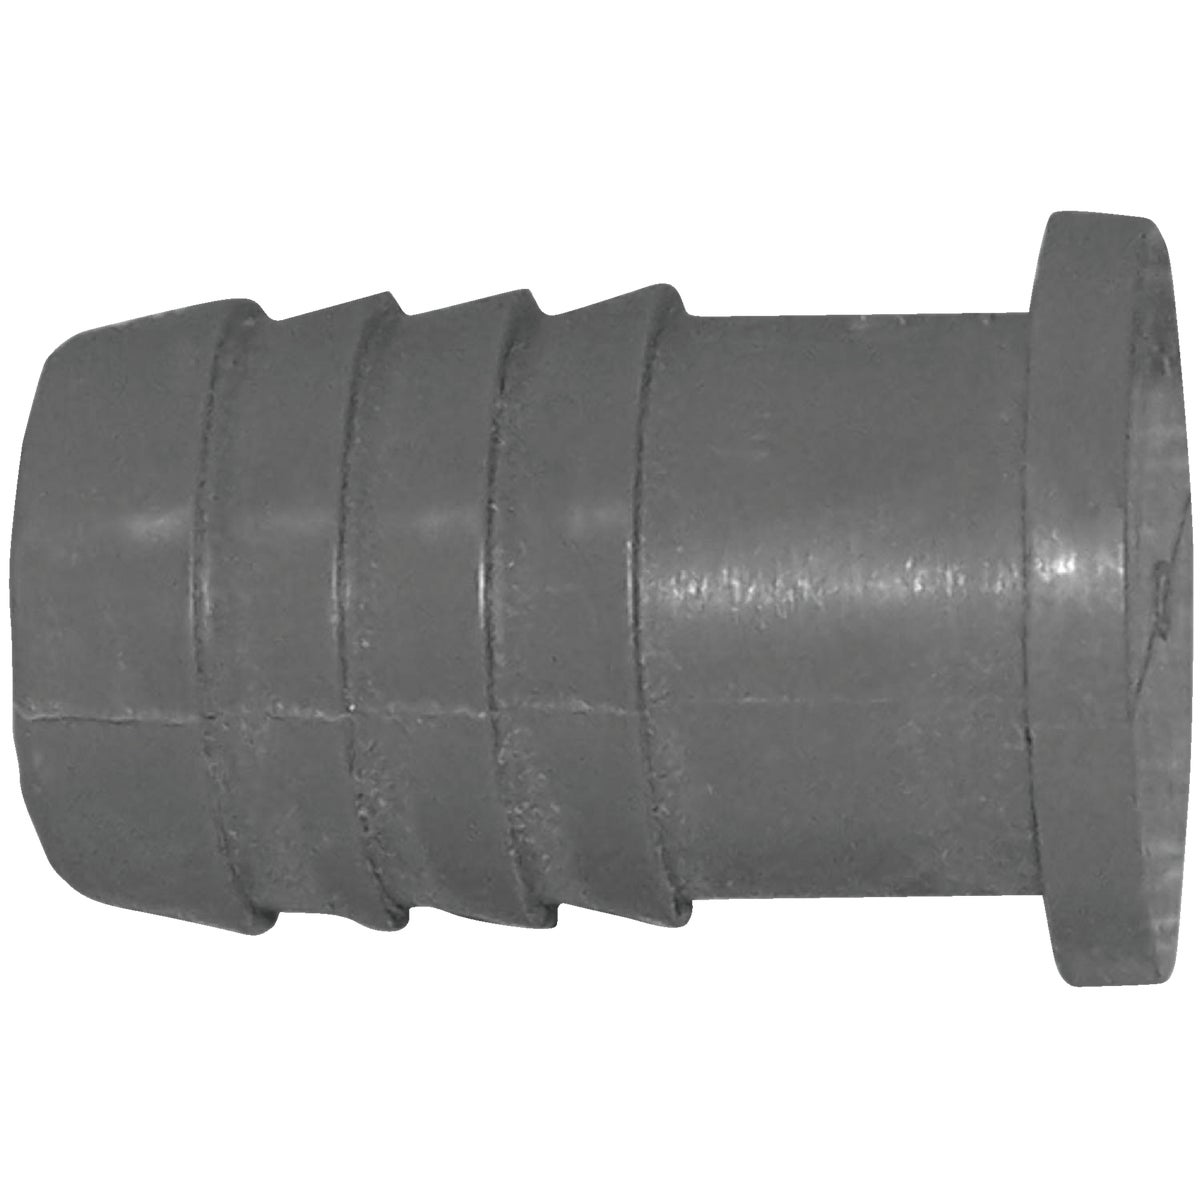 "3/4"" POLY INSERT PLUG - 351827 by Genova Inc"